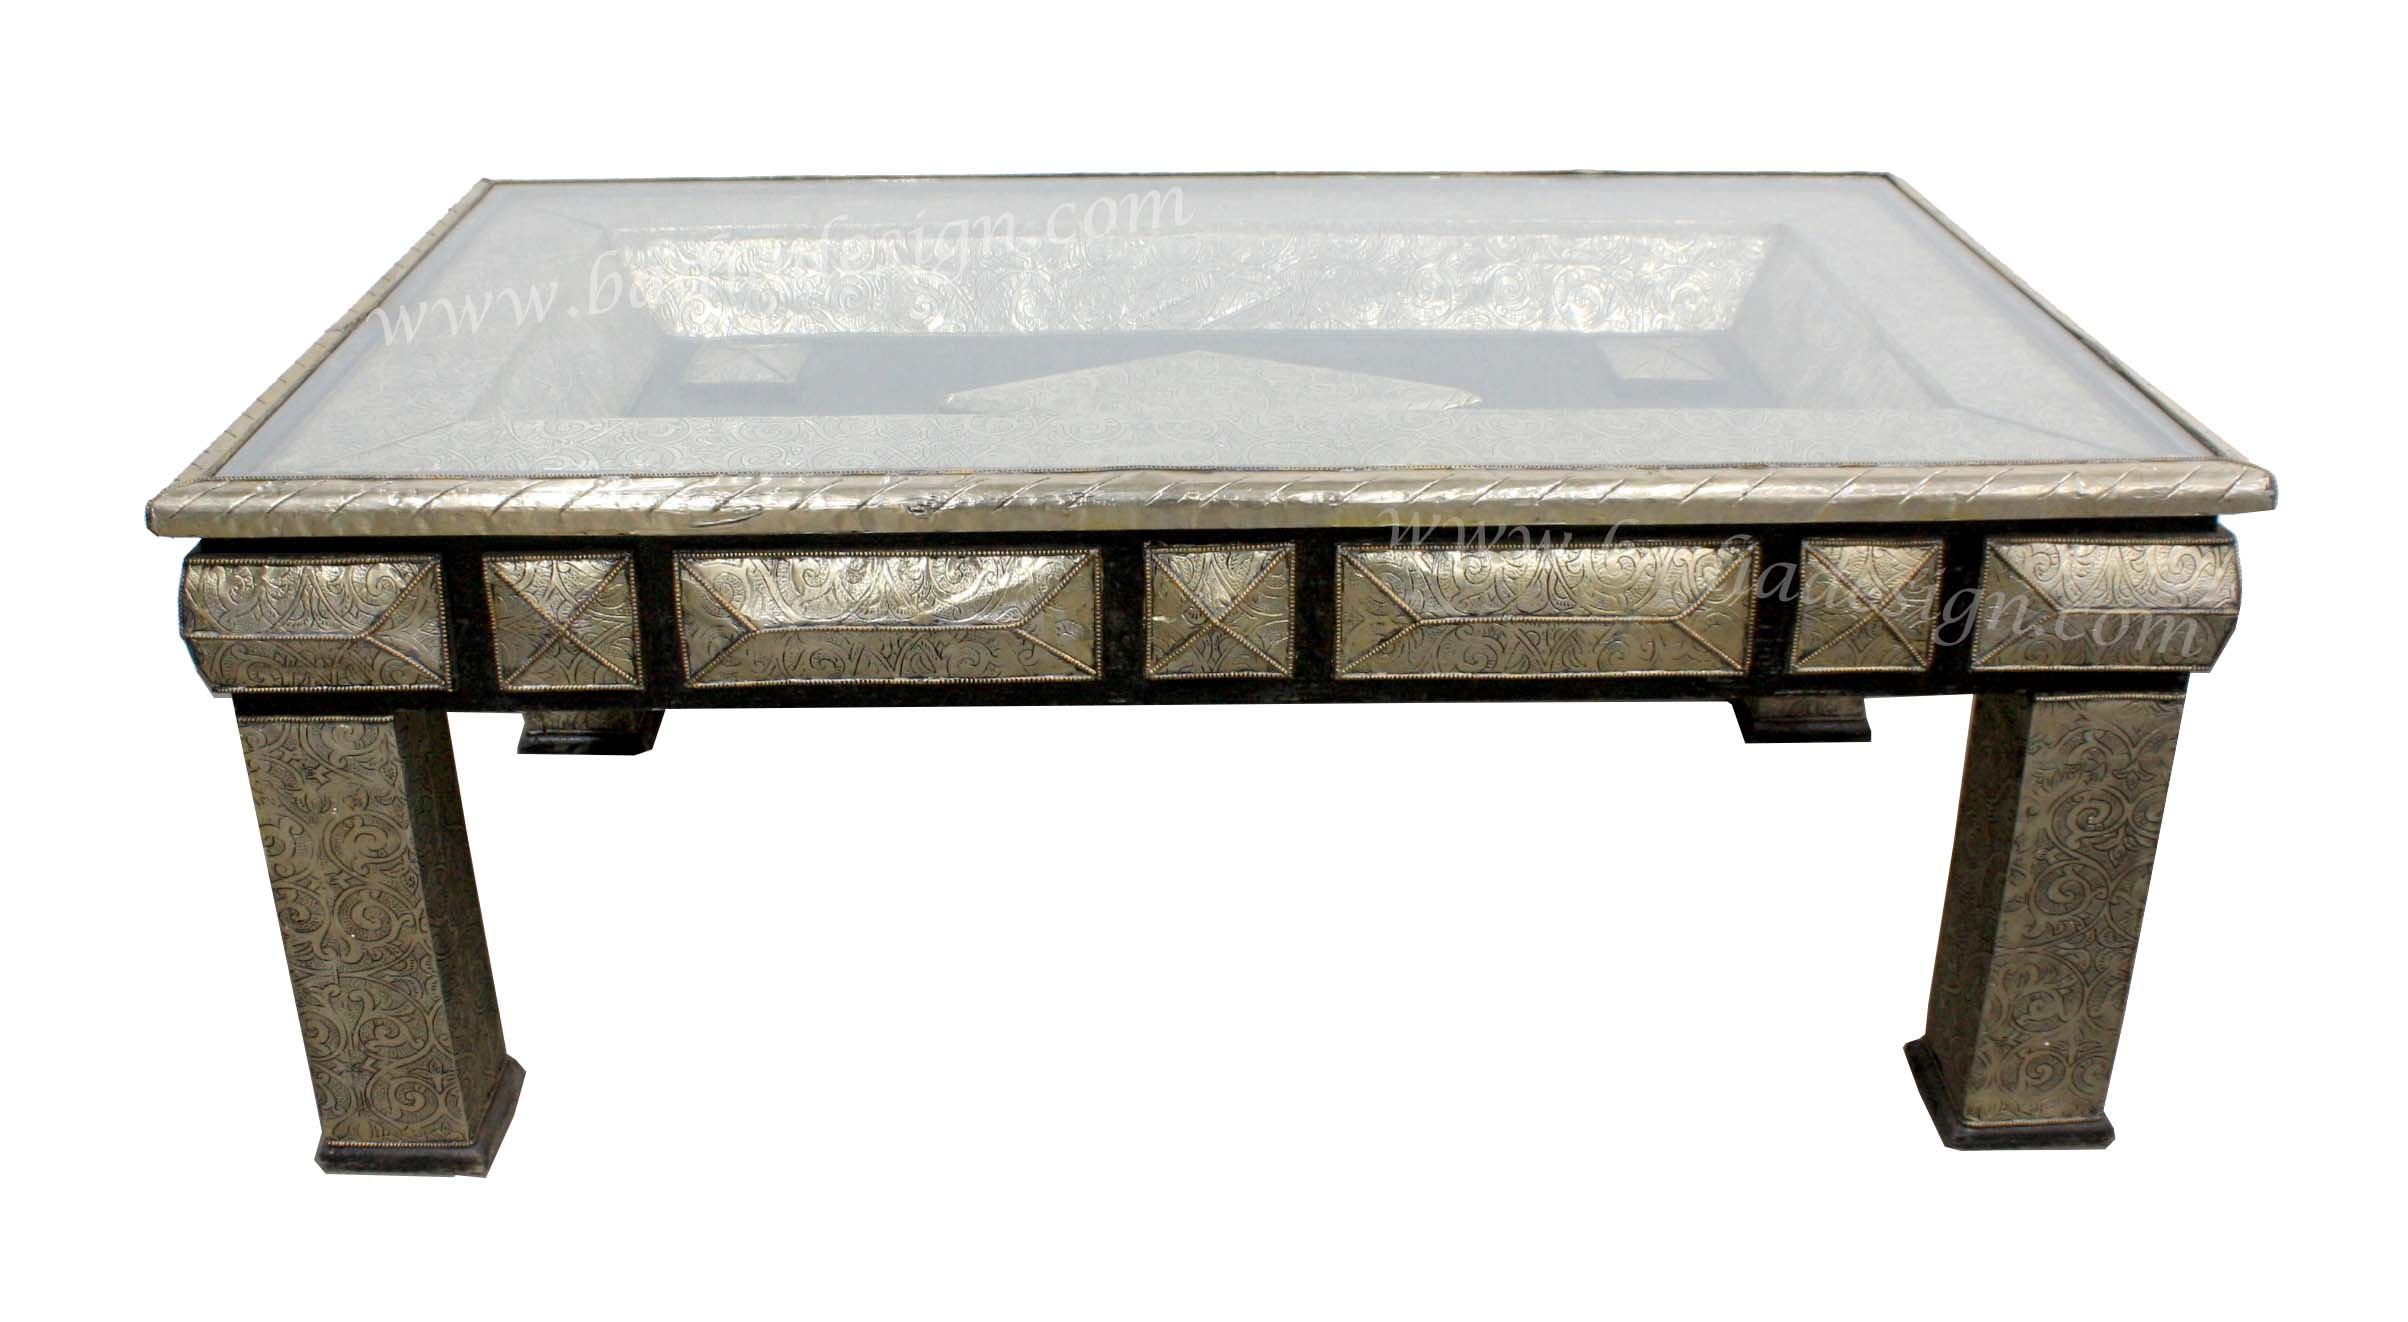 moroccan-metal-coffee-table-with-glass-top-br-st010-1.jpg